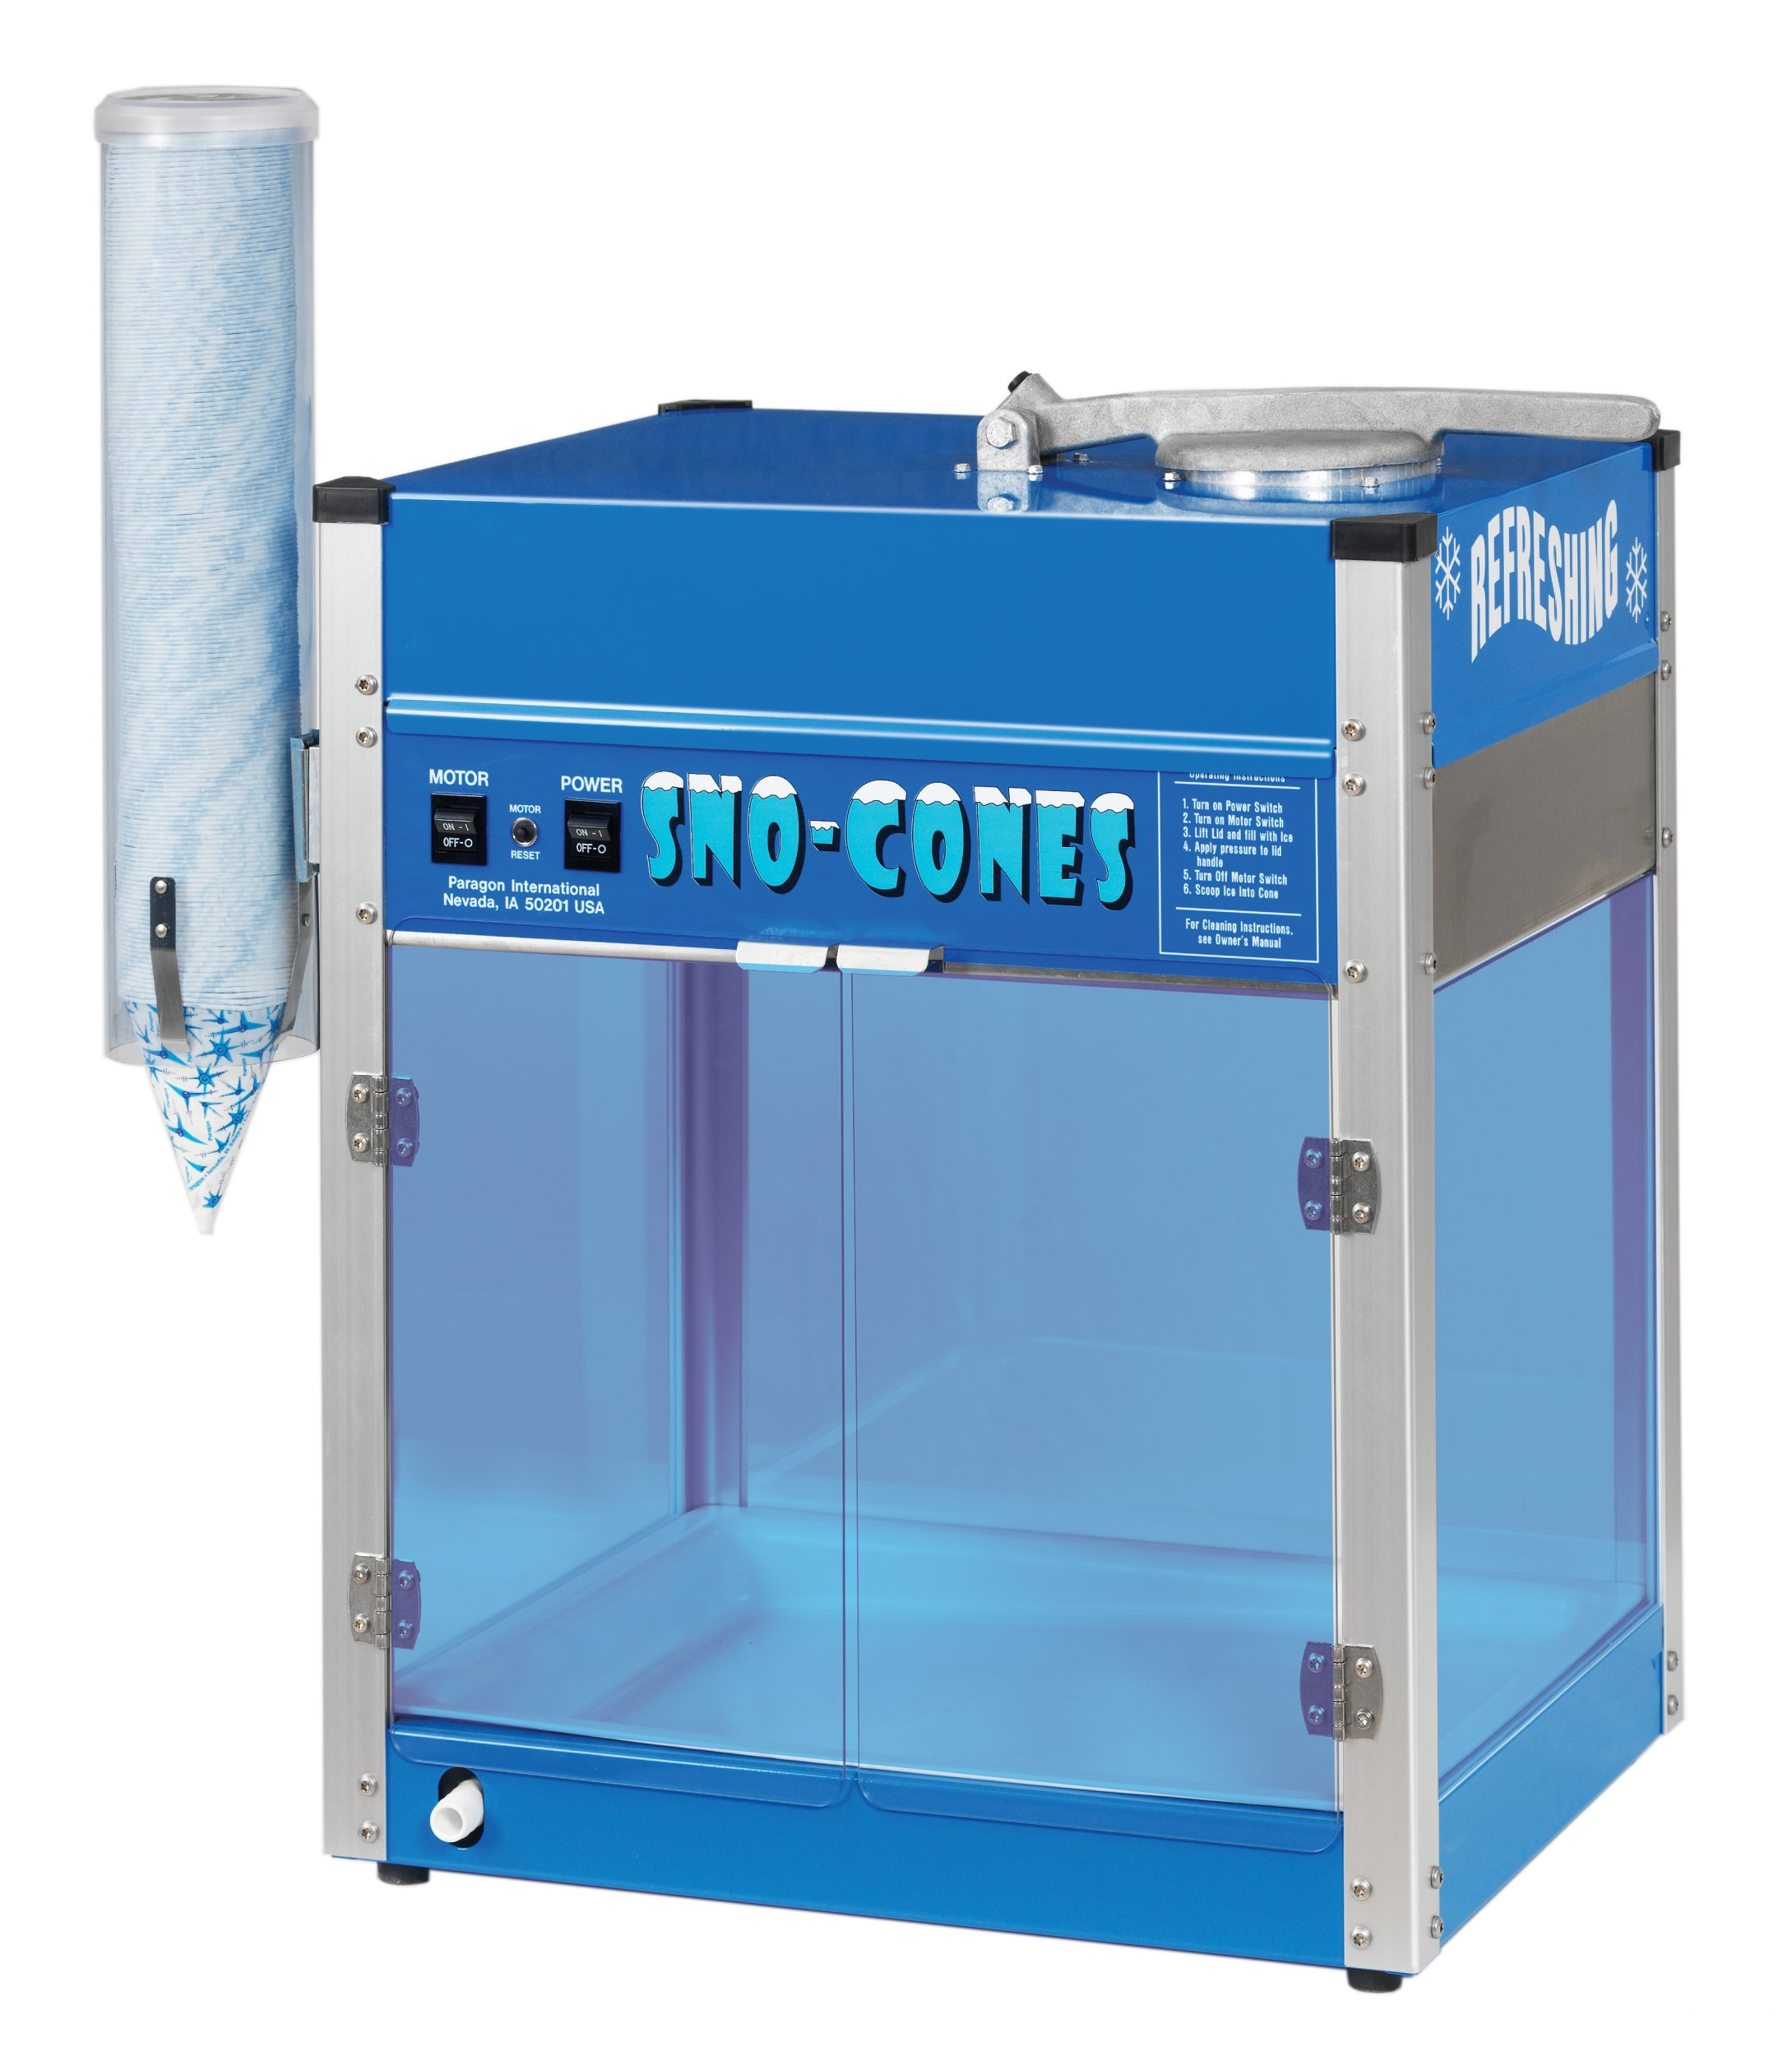 Paragon The Blizzard Snow Cone Machine by Paragon - Manufactured Fun